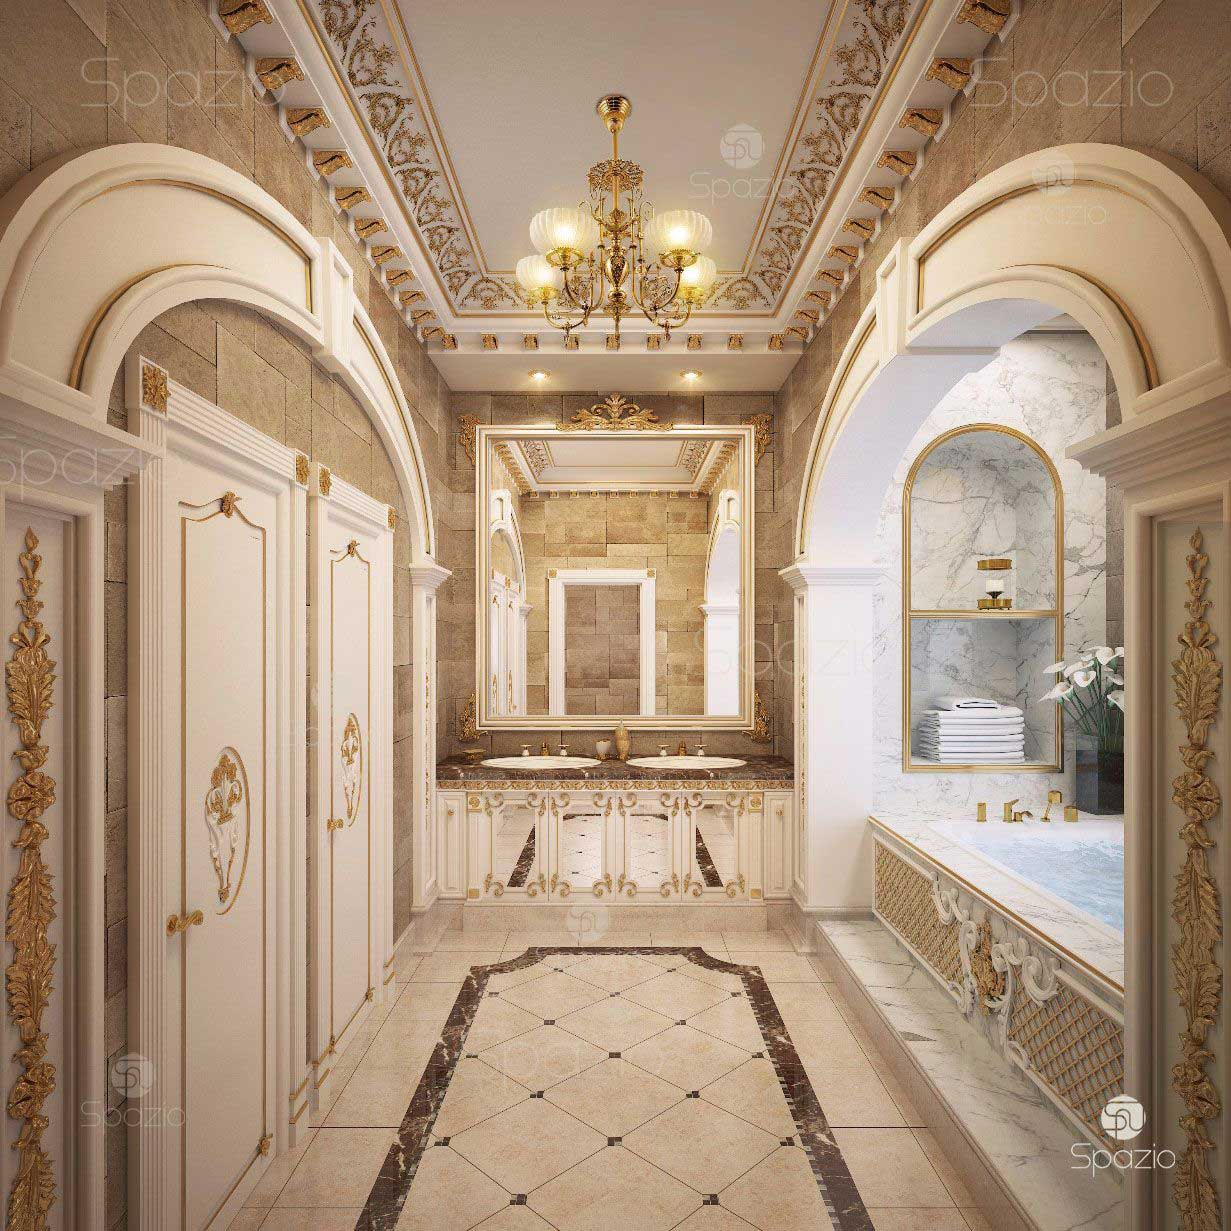 luxury palace interior design in the uae spaziothe main bathroom made by us in a luxurious residence in abu dhabi order an in addition to the palace interior